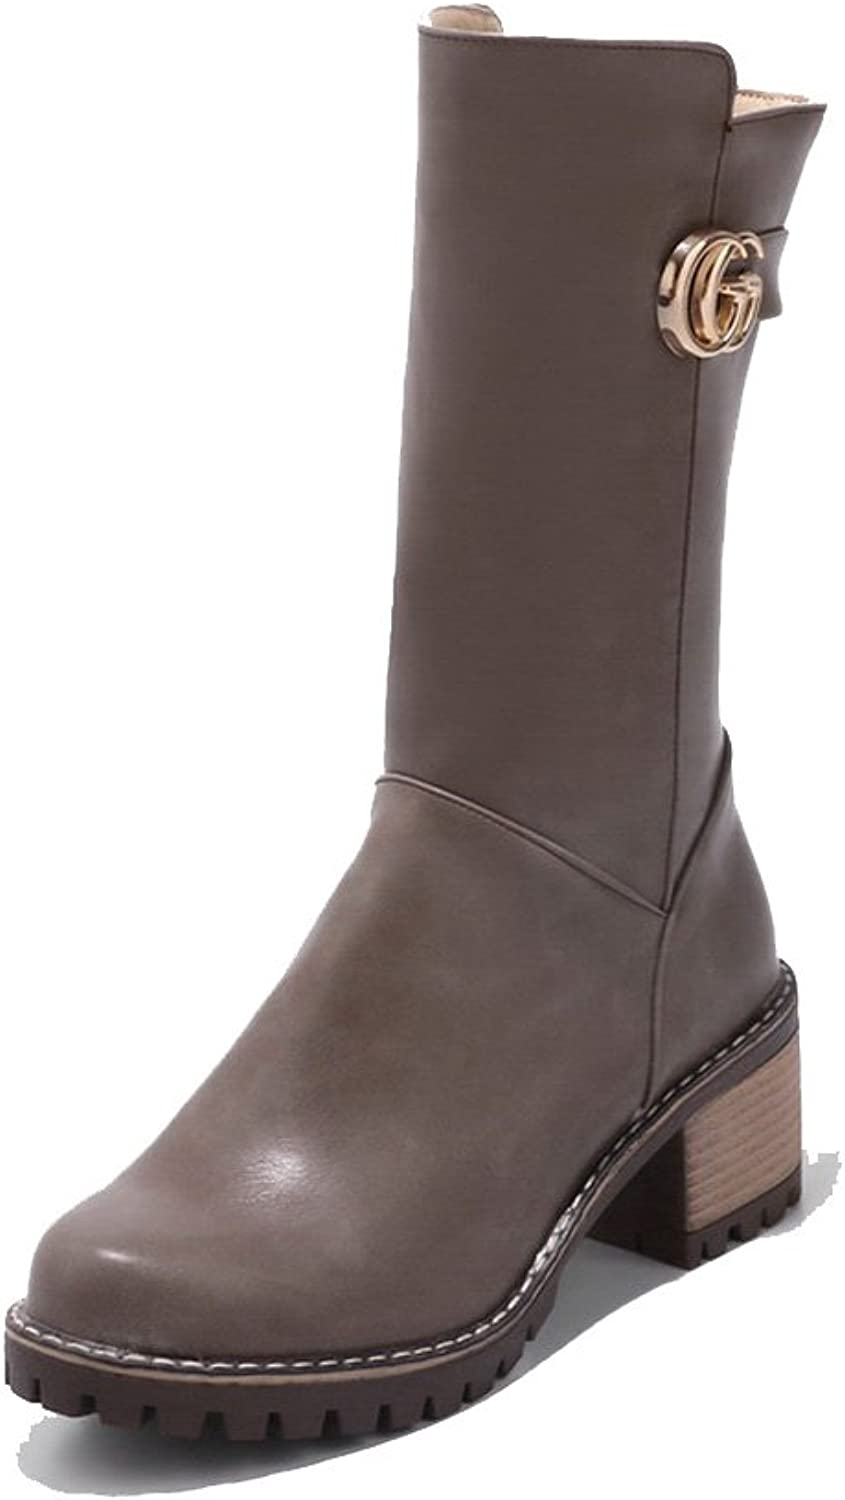 AandN Womens Boots High-Top Zip Low-Heel Solid Warm Lining Rubber Waterproof Road Smooth Leather Manmade Firm-Ground Slouch Urethane Boots DKU01899